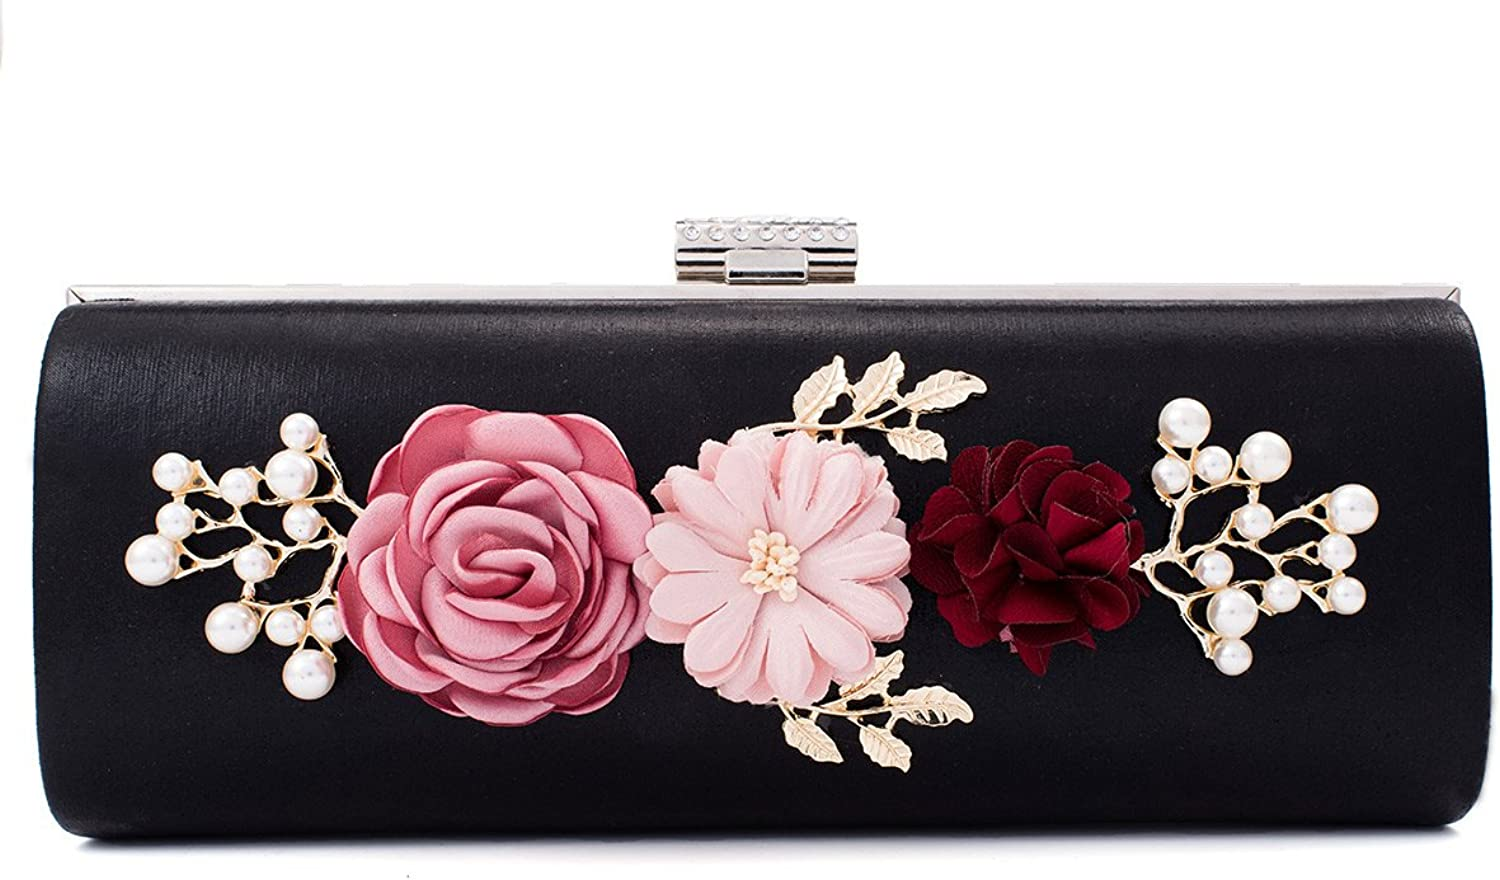 Darama Womens Solid Flowers Beads Delicate Evening Clutch Bag